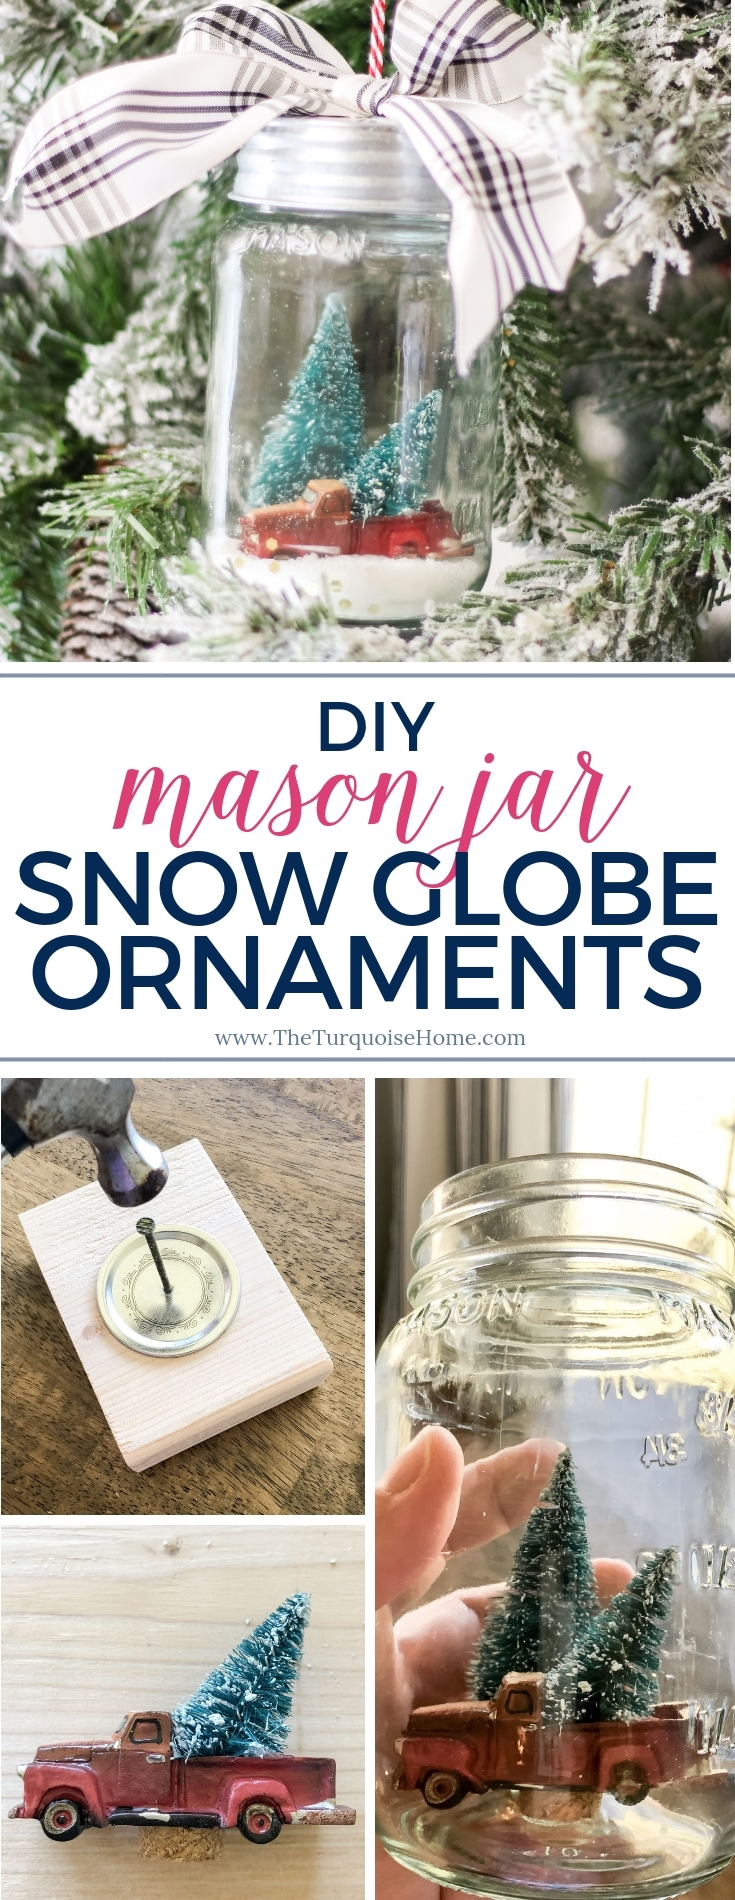 DIY Mason Jar Snow Globe Ornaments with a red truck and bottle brush tree